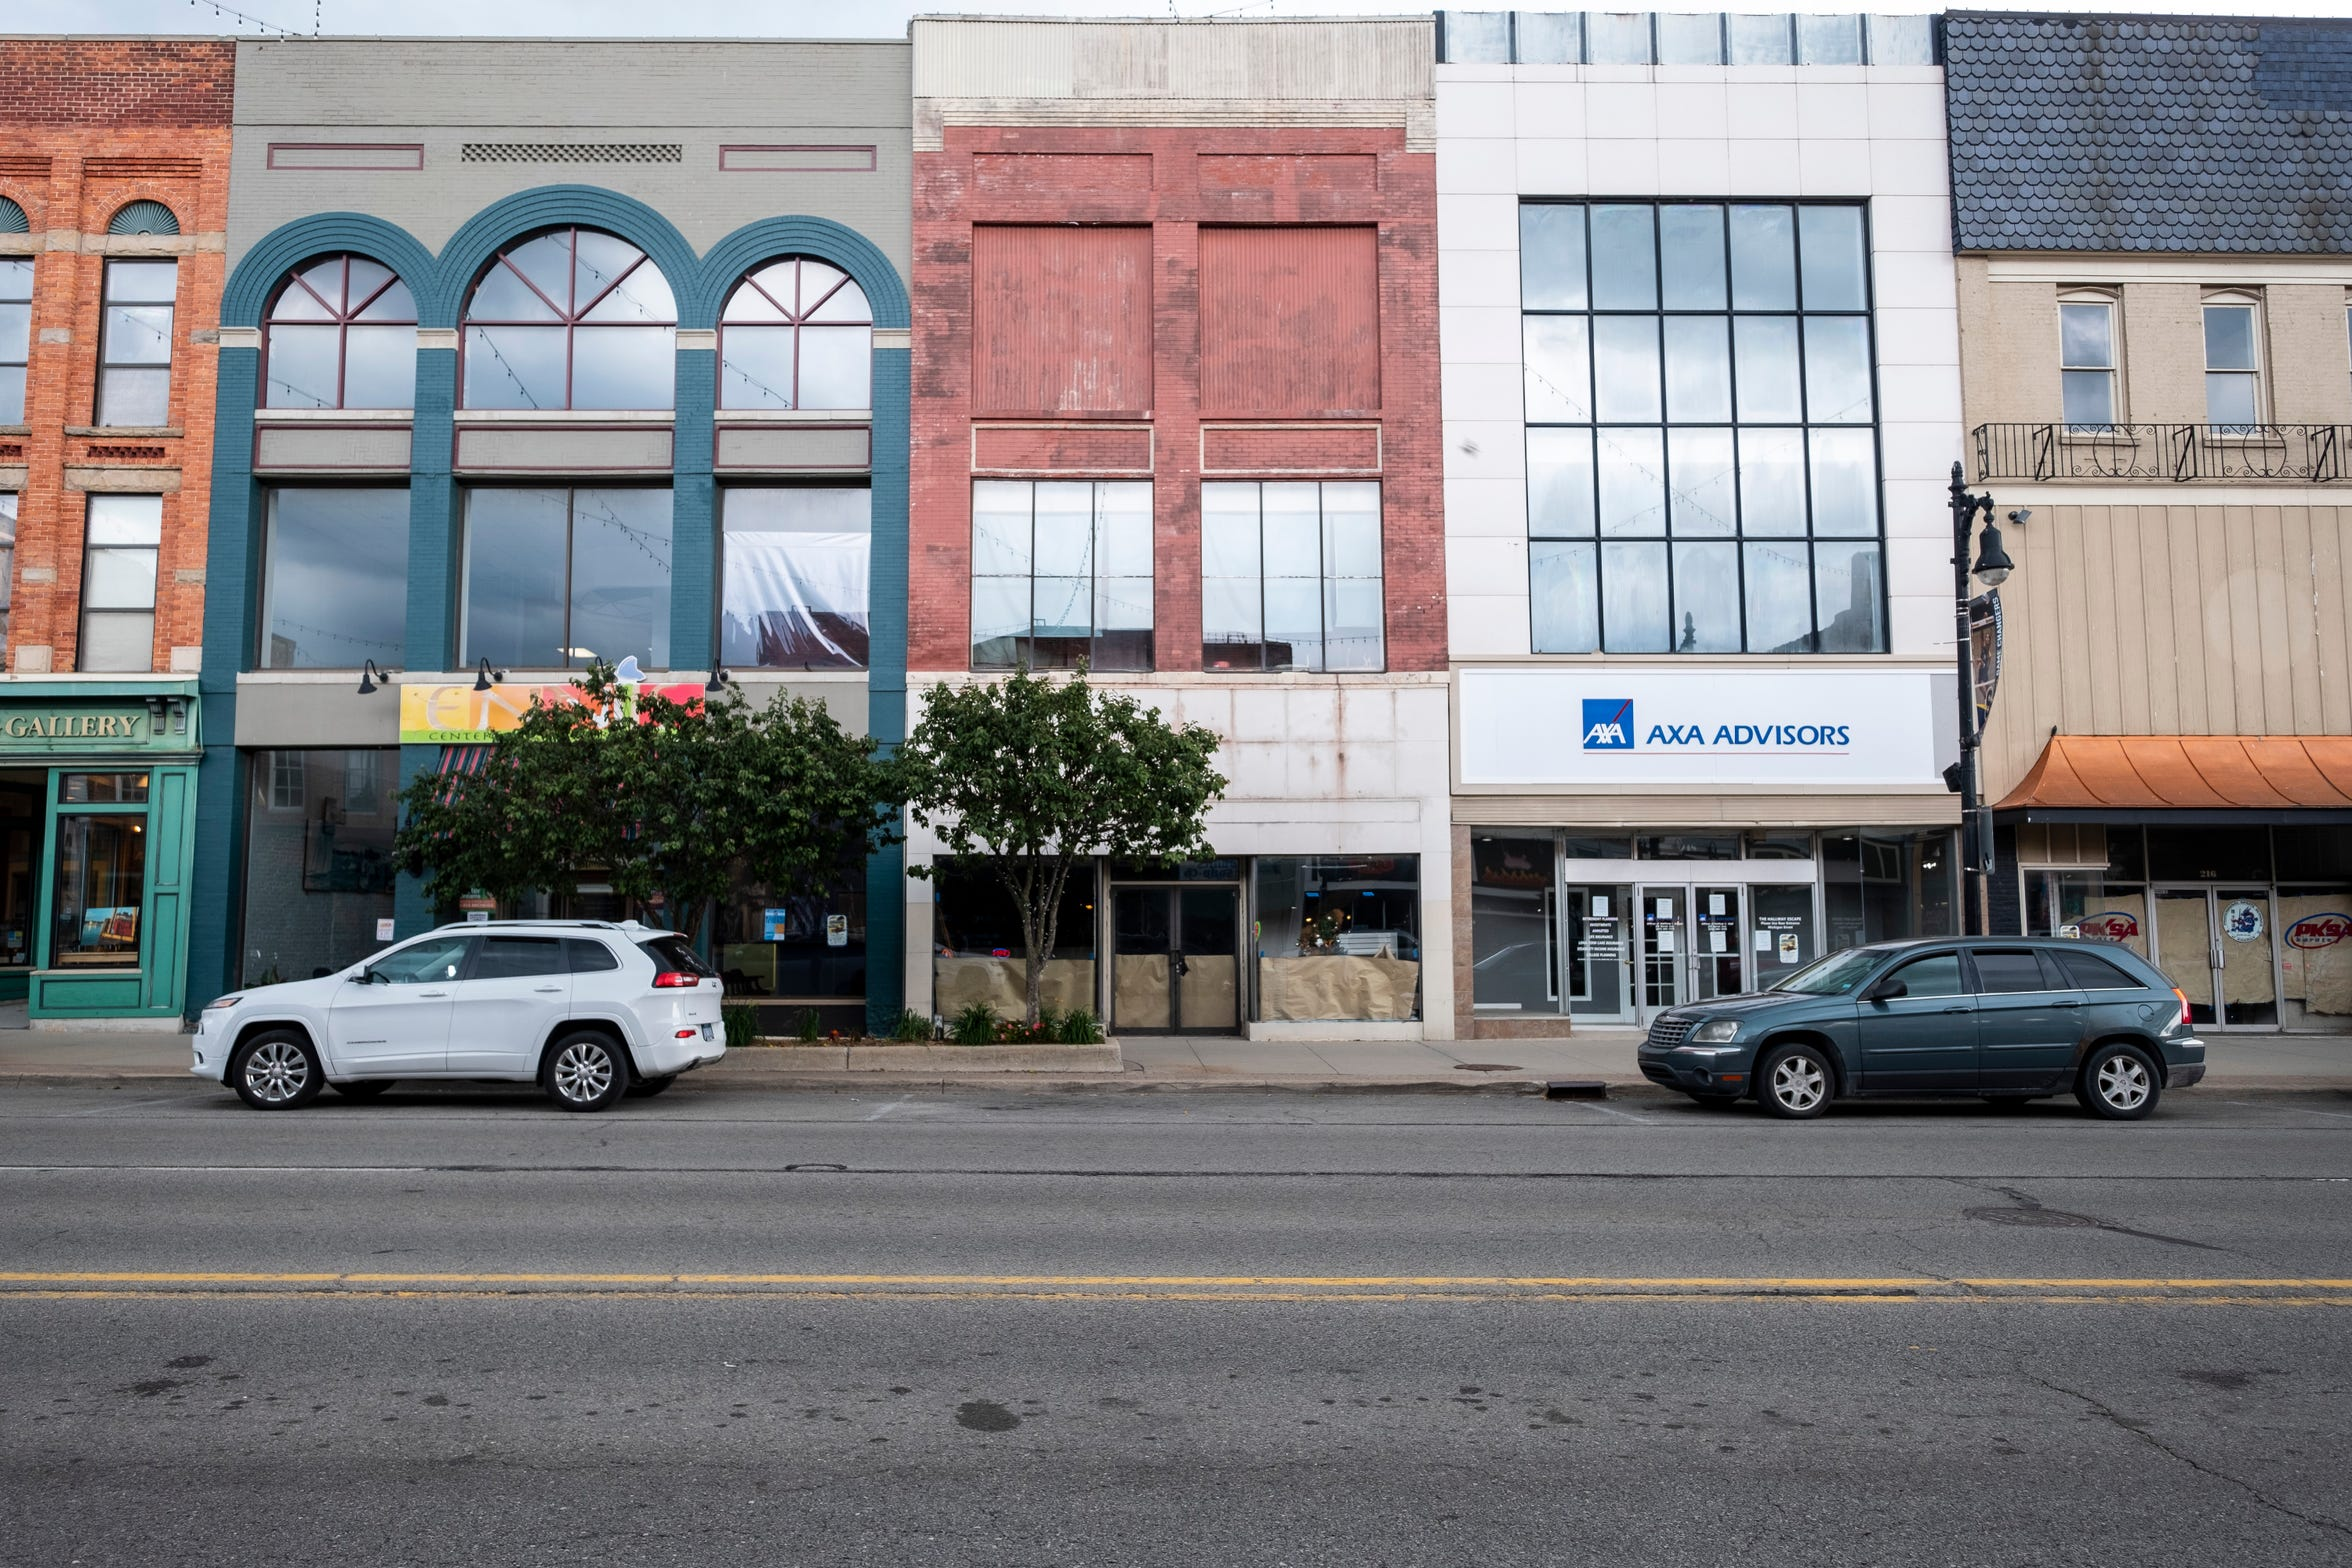 Even with more businesses moving downtown, several storefronts and buildings along Huron Avenue remain vacant.